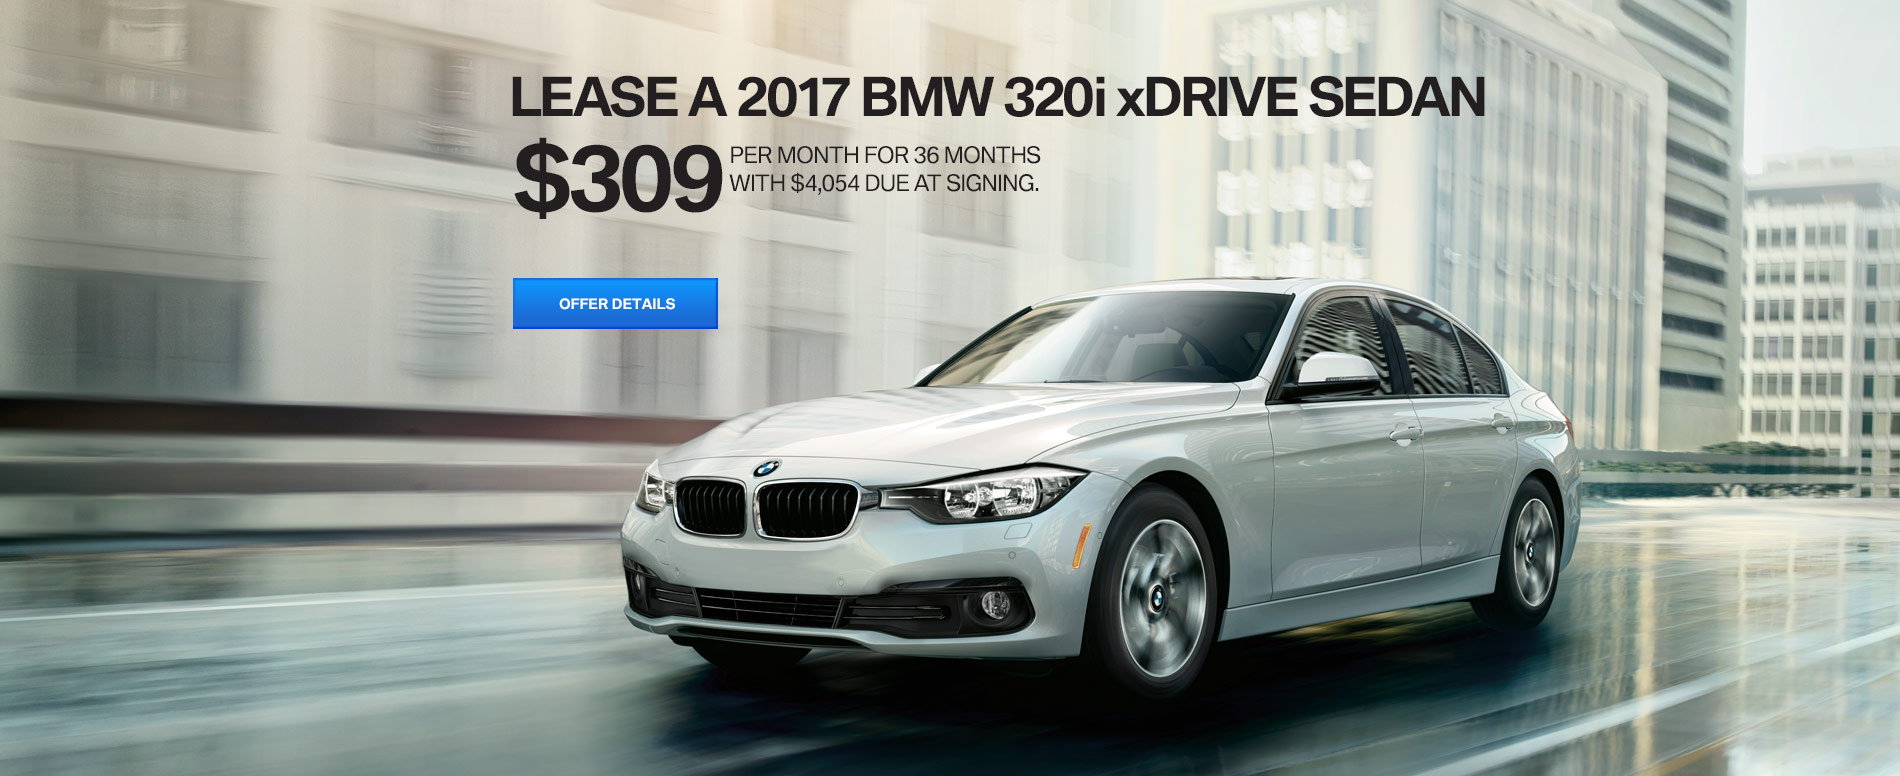 320i xDrive Sedan Lease for $309/mo for 36 months